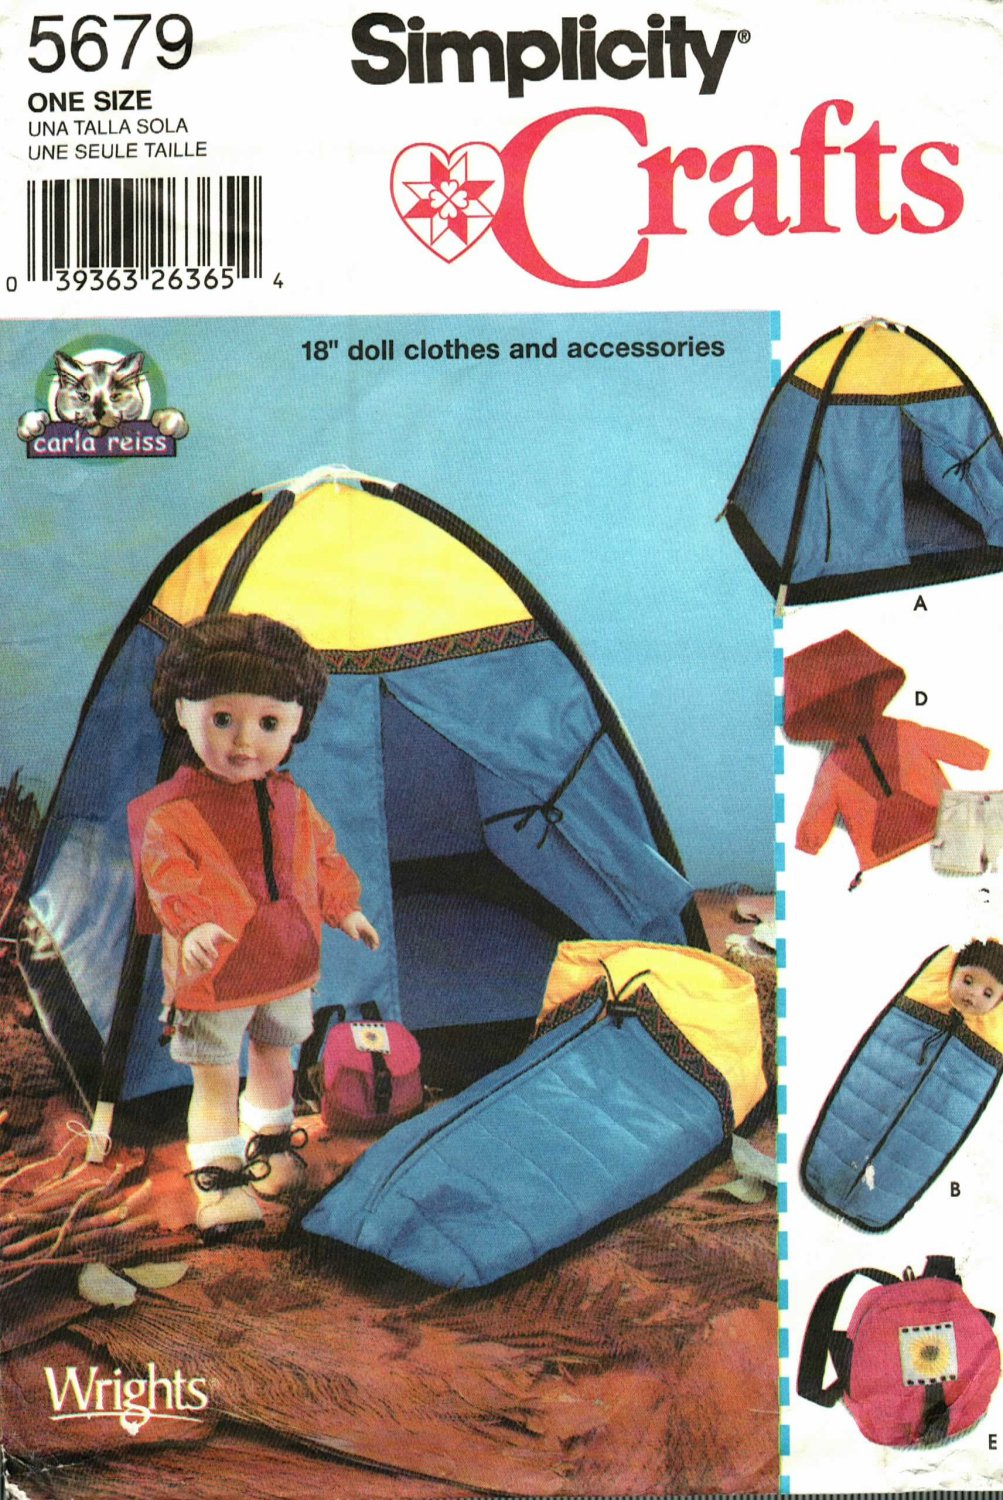 Simplicity 5679 Pattern Uncut FF Camping Clothes Accessories Tent for 18 inch doll